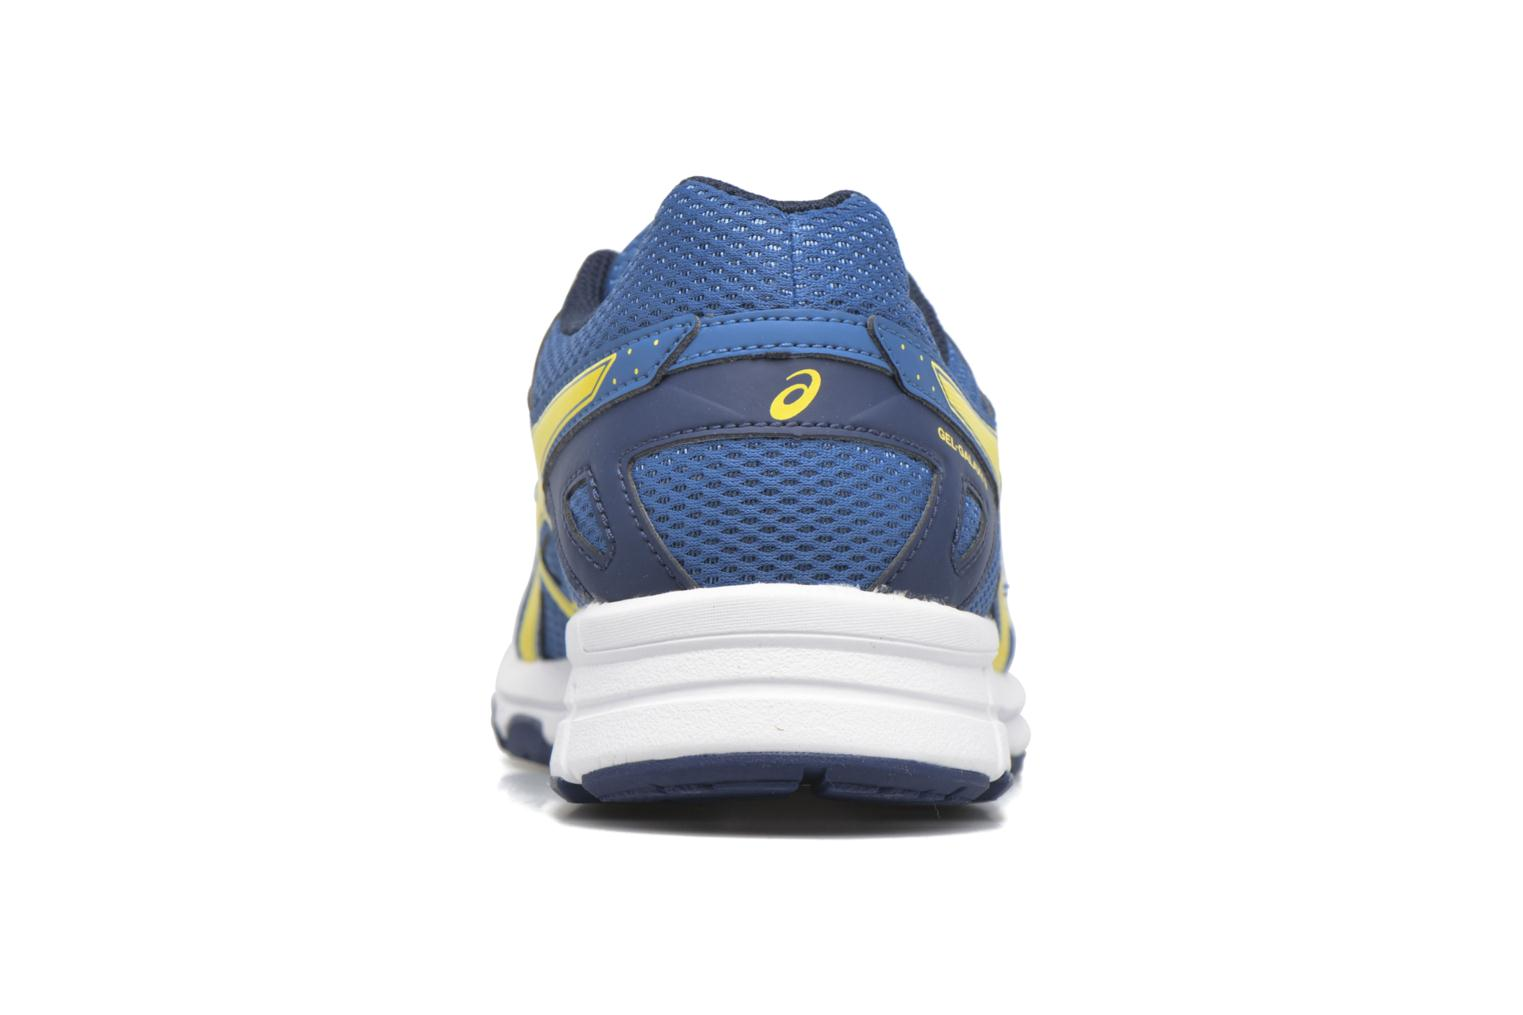 Gel Galaxy 9 GS Thunder Blue / Vibrant Yellow / Indigo Blue